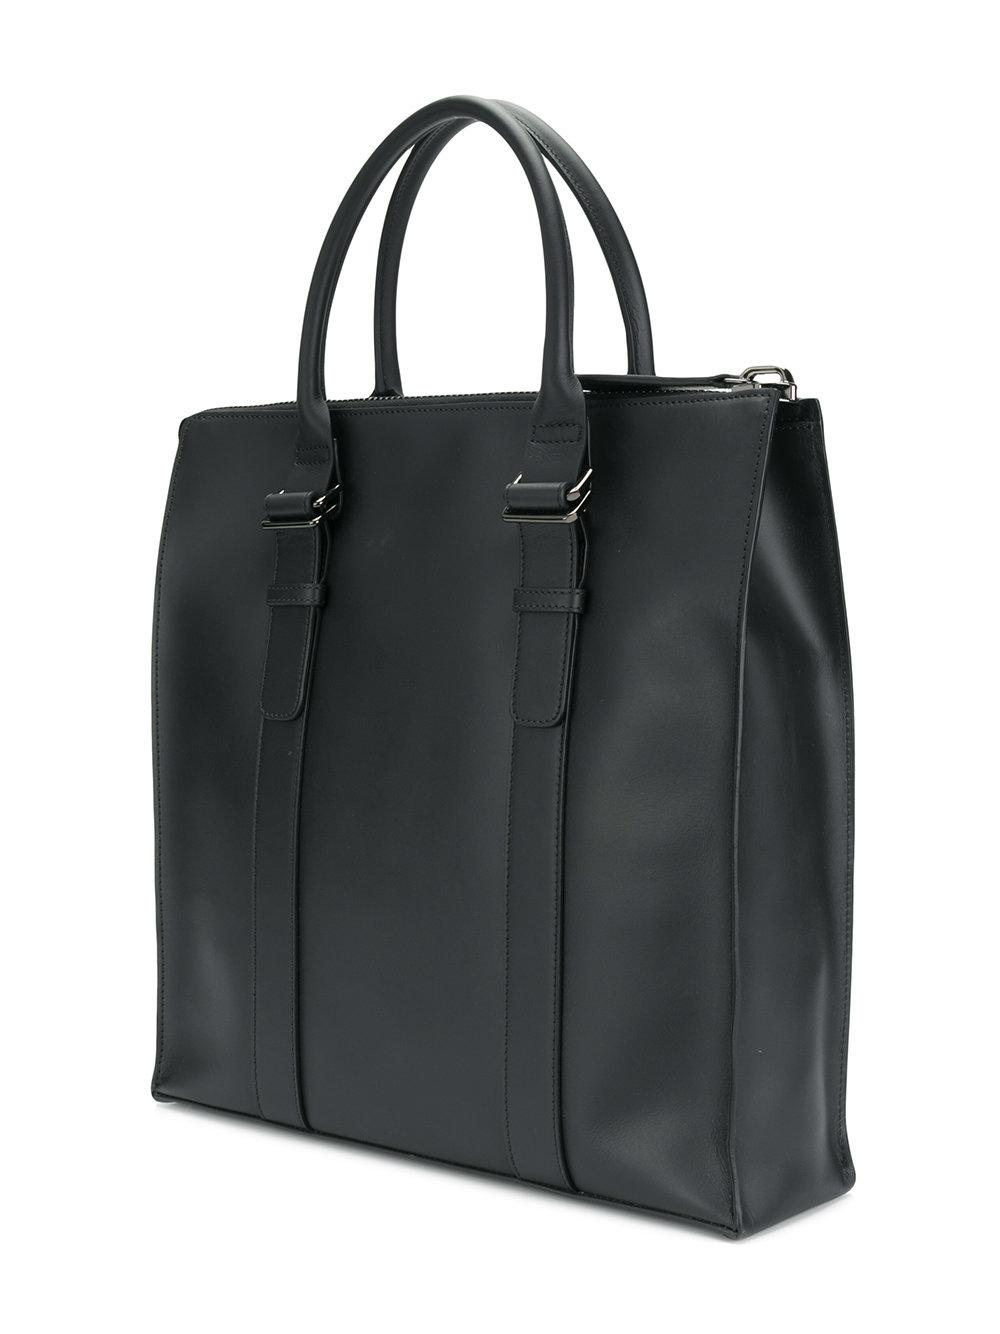 square tote - Black Zanellato Factory Outlet Purchase Your Favorite  Fast Express Order Sale Online vajF1r6d